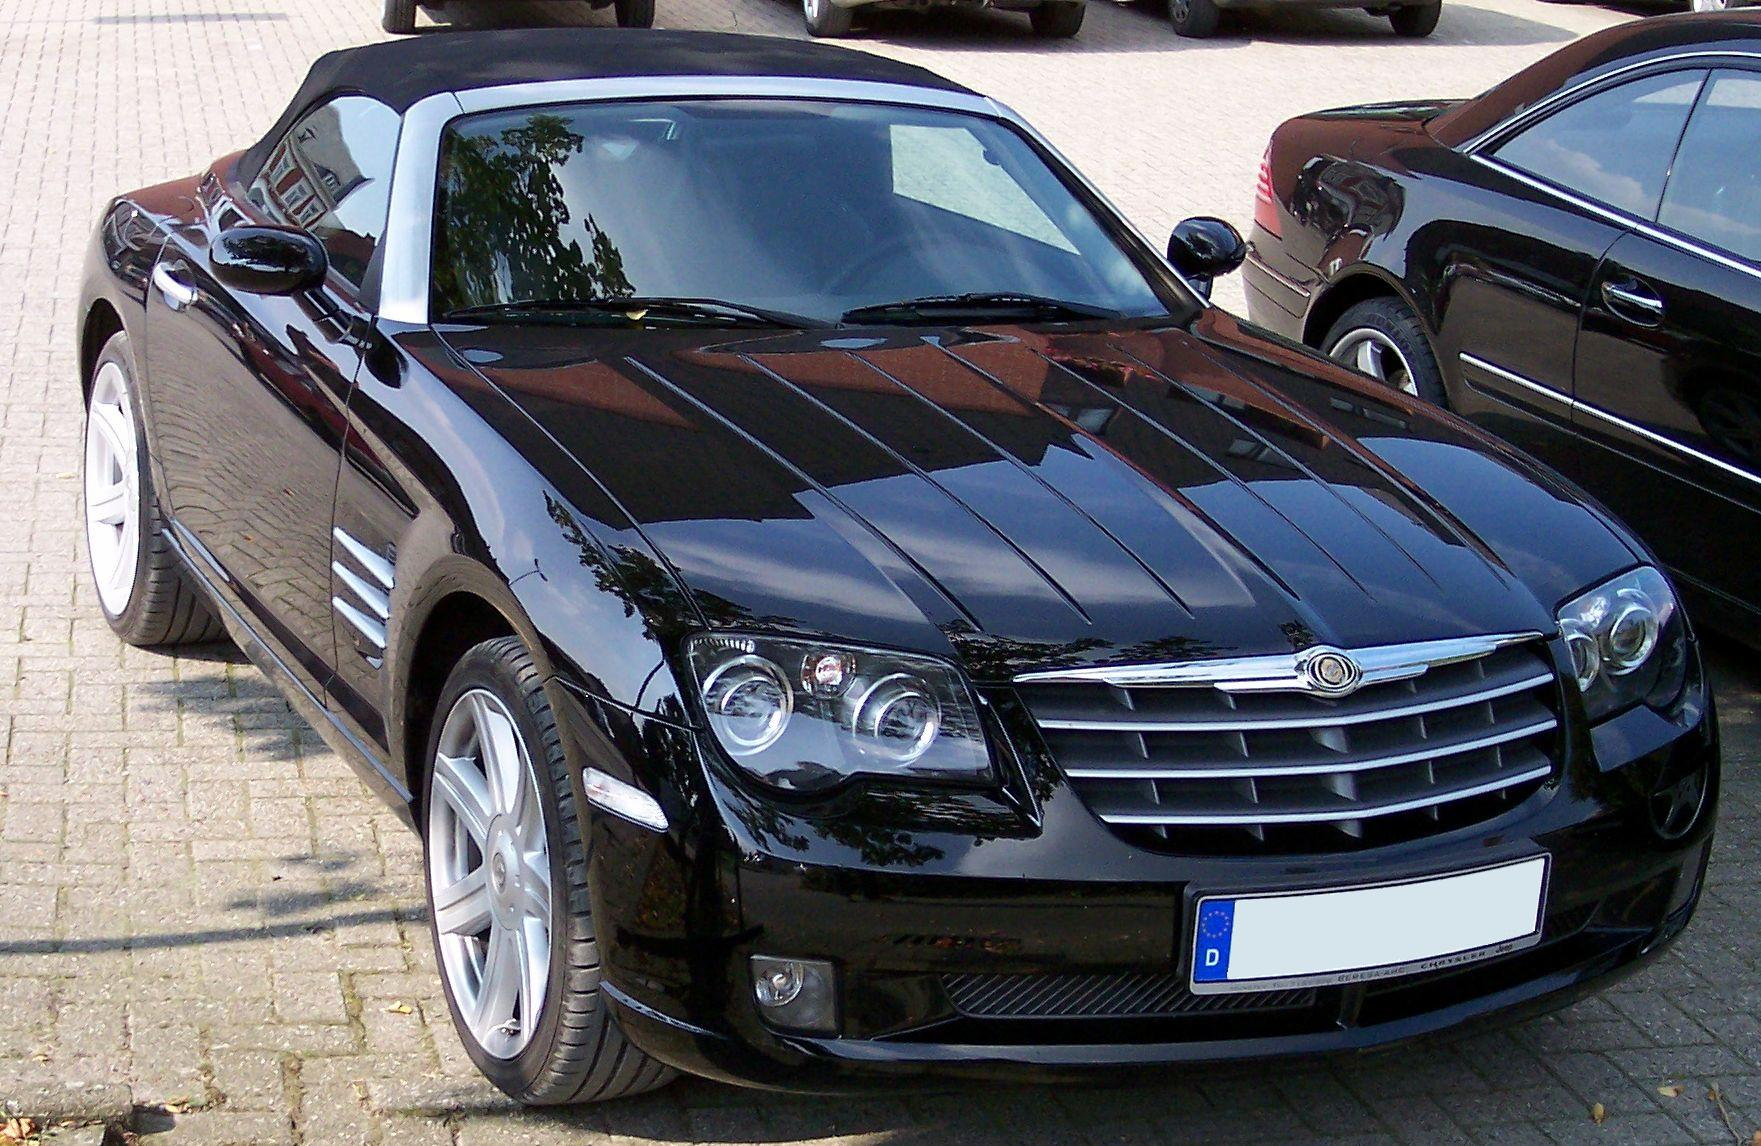 file chrysler crossfire cabrio black wikimedia commons. Black Bedroom Furniture Sets. Home Design Ideas